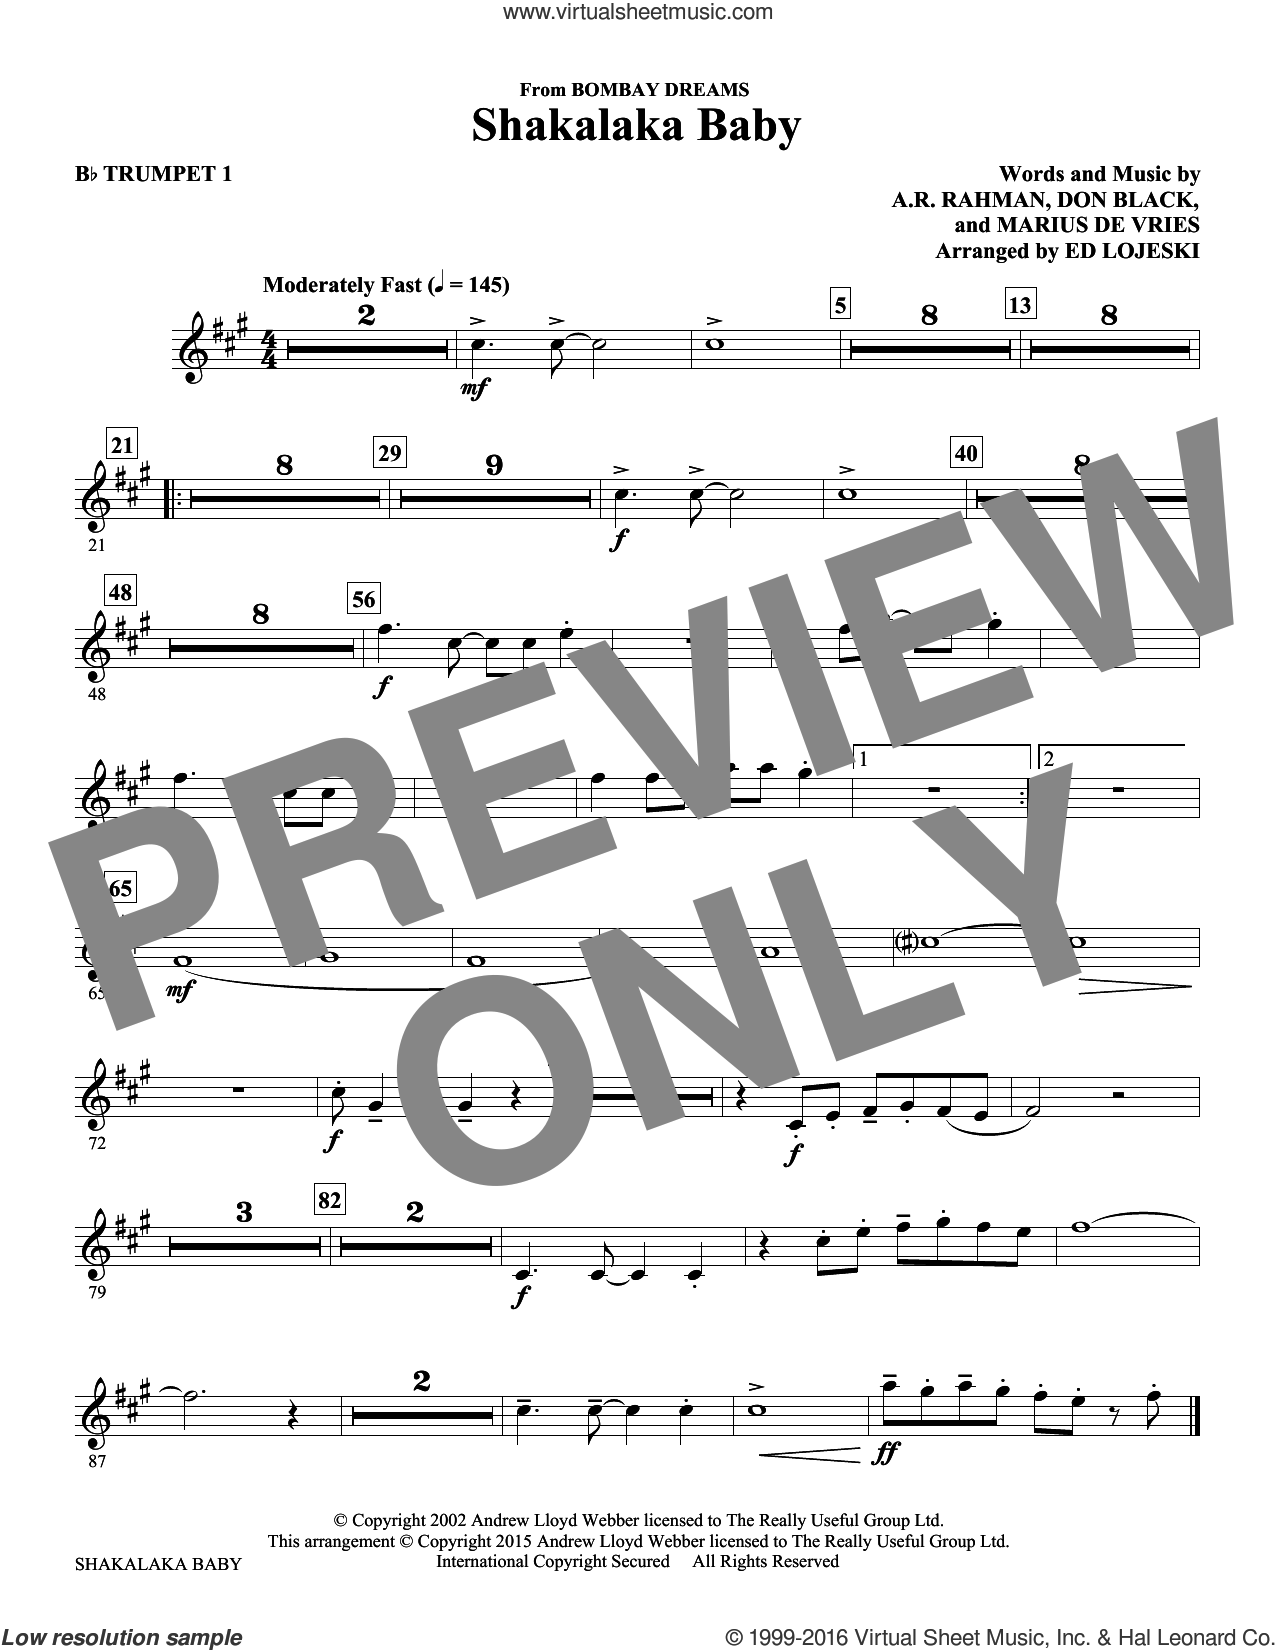 Shakalaka Baby (from Bombay Dreams) (COMPLETE) sheet music for orchestra by Ed Lojeski, A.R. Rahman, Don Black and Marius De Vries, intermediate. Score Image Preview.